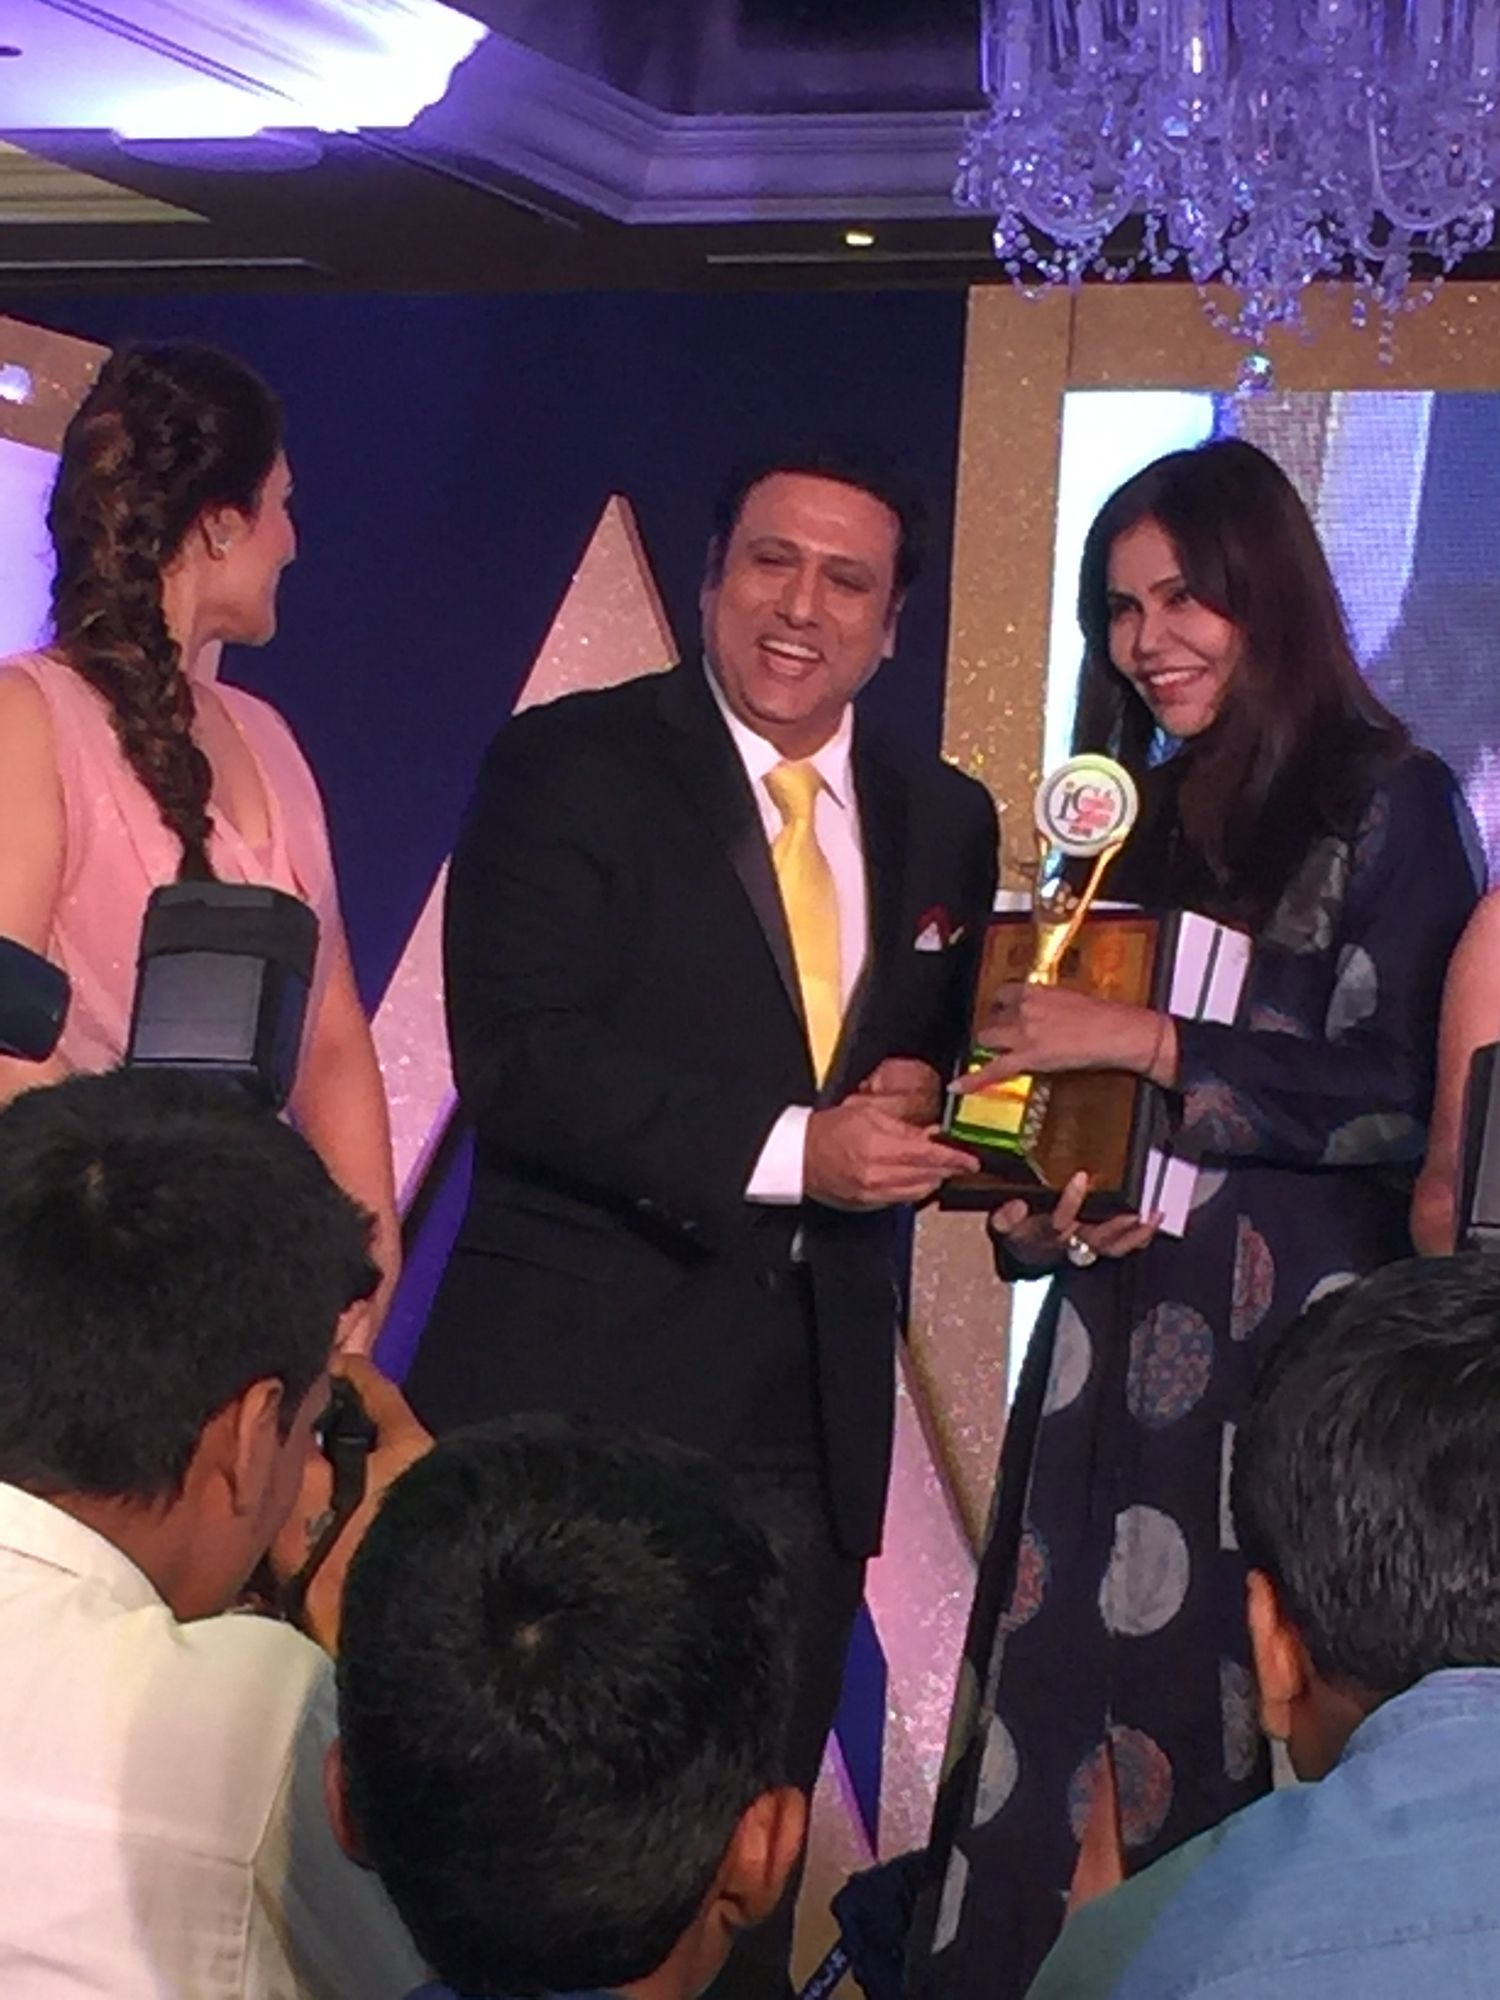 An award & invigorating panel discussions- appreciations & an overall positive feel! Tonight is a night of #gratitude #love #light #positive #award #recognition #acclaim #NishaJamVwalDesign #foracause #love #light #positivity #NishaJamVwal